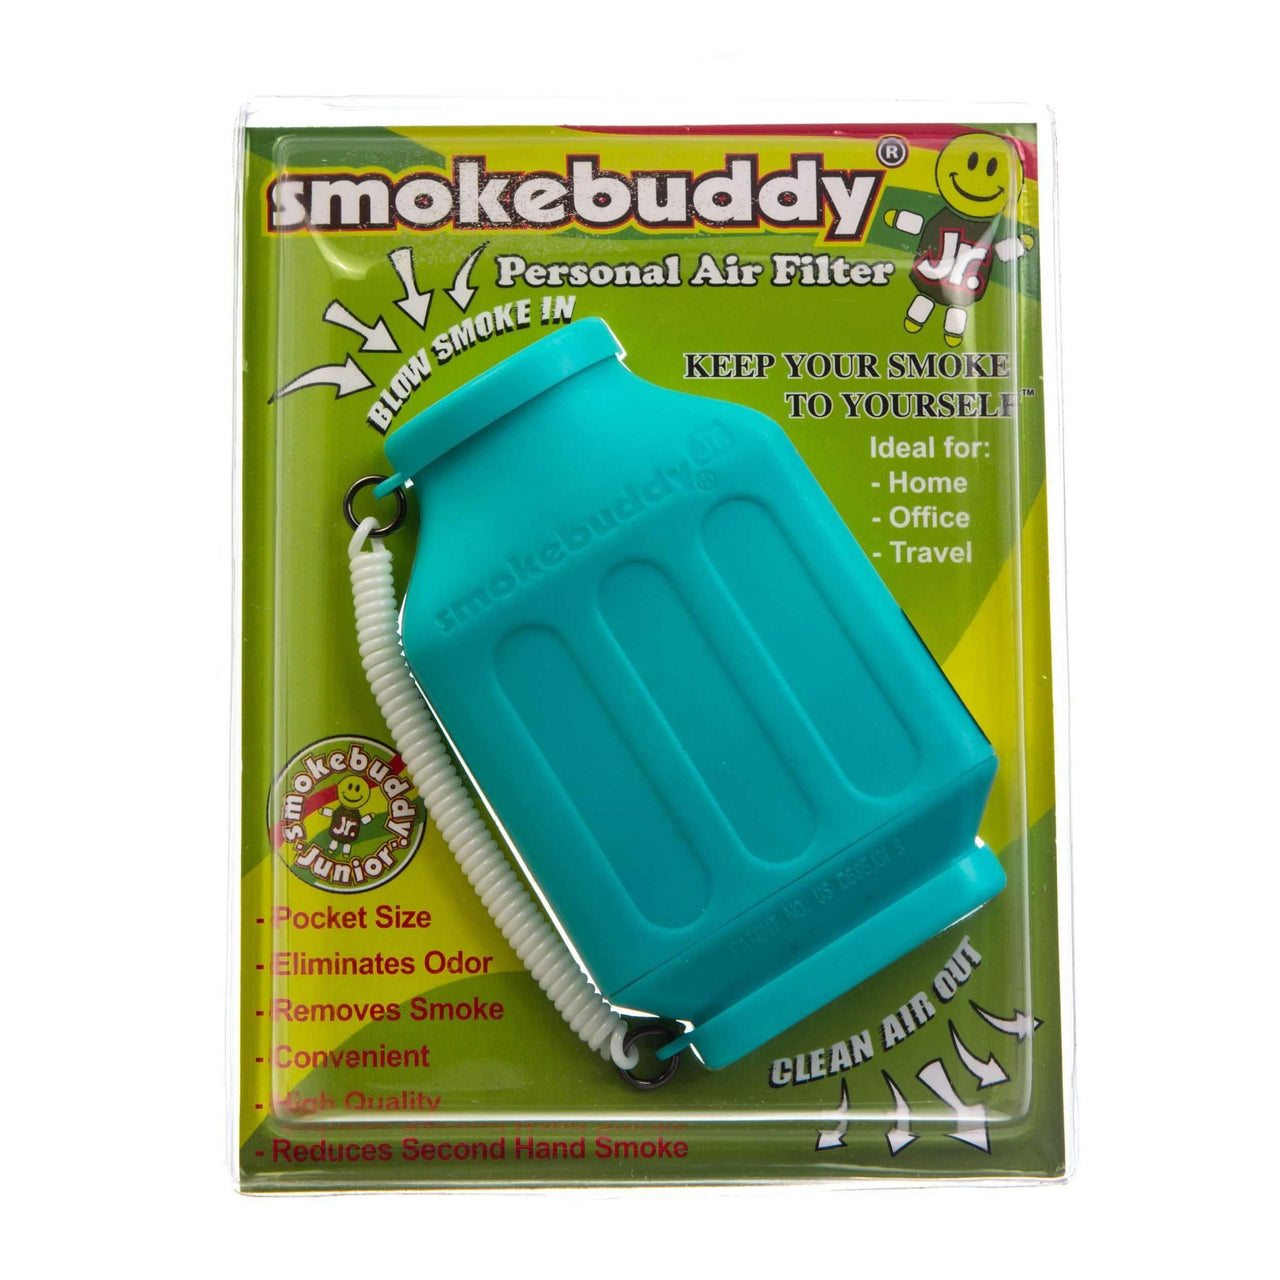 SmokeBuddy Jr. Personal Air Filter - Teal | The710Source.com